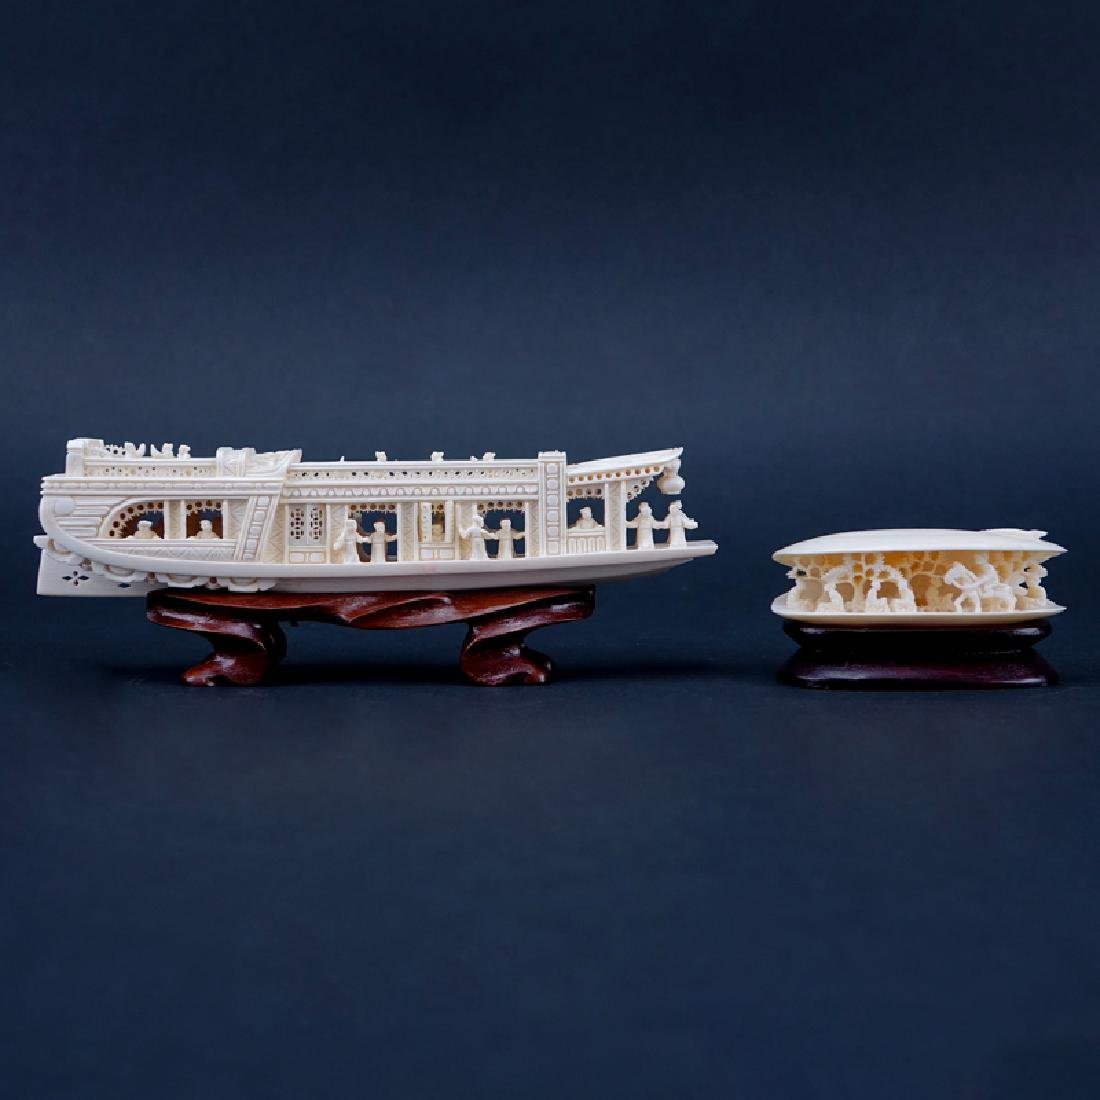 Antique Chinese Ivory Junk Ship and Clam Shell Carvings